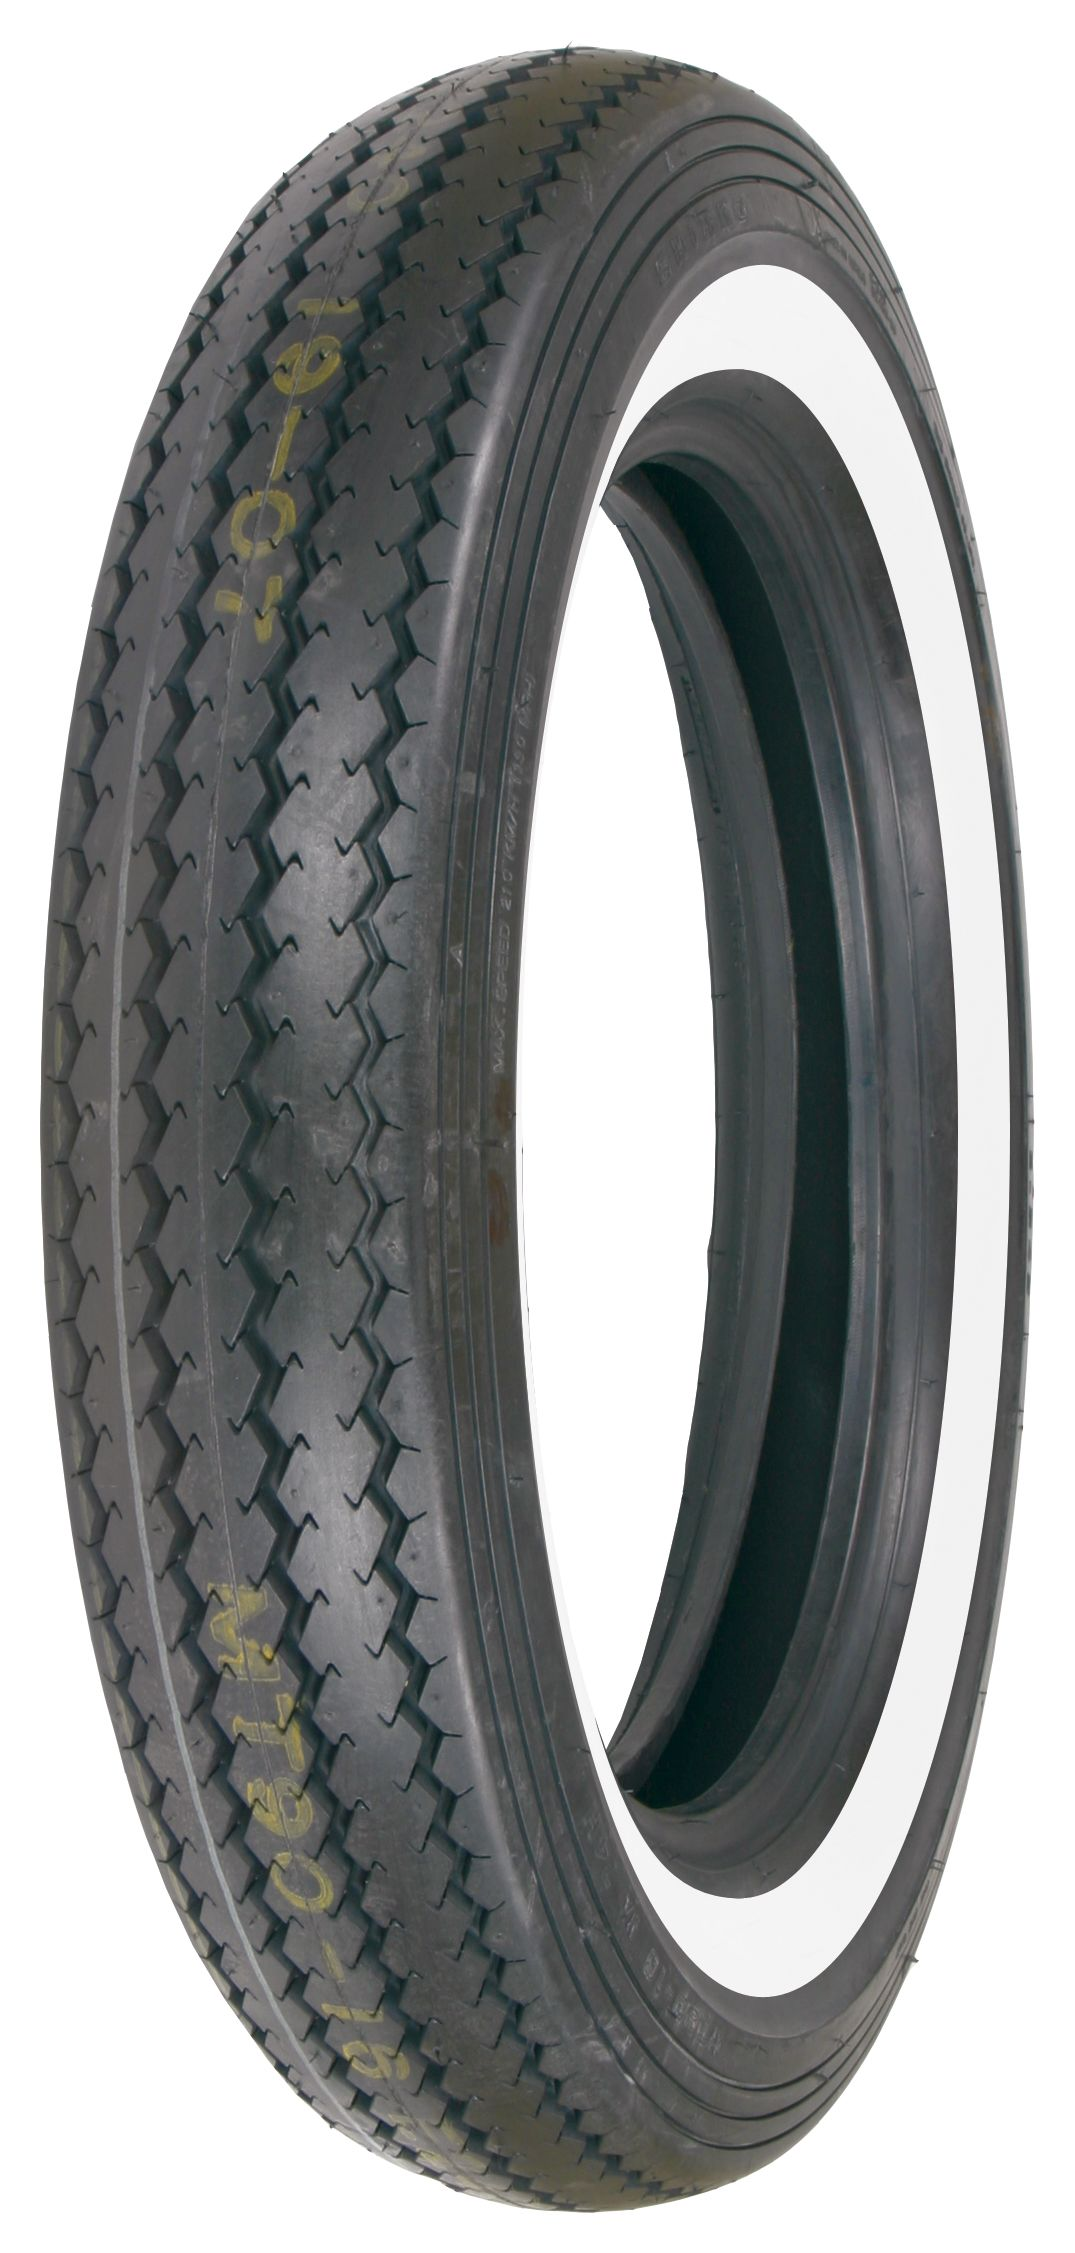 Vintage Whitewall Tires 68